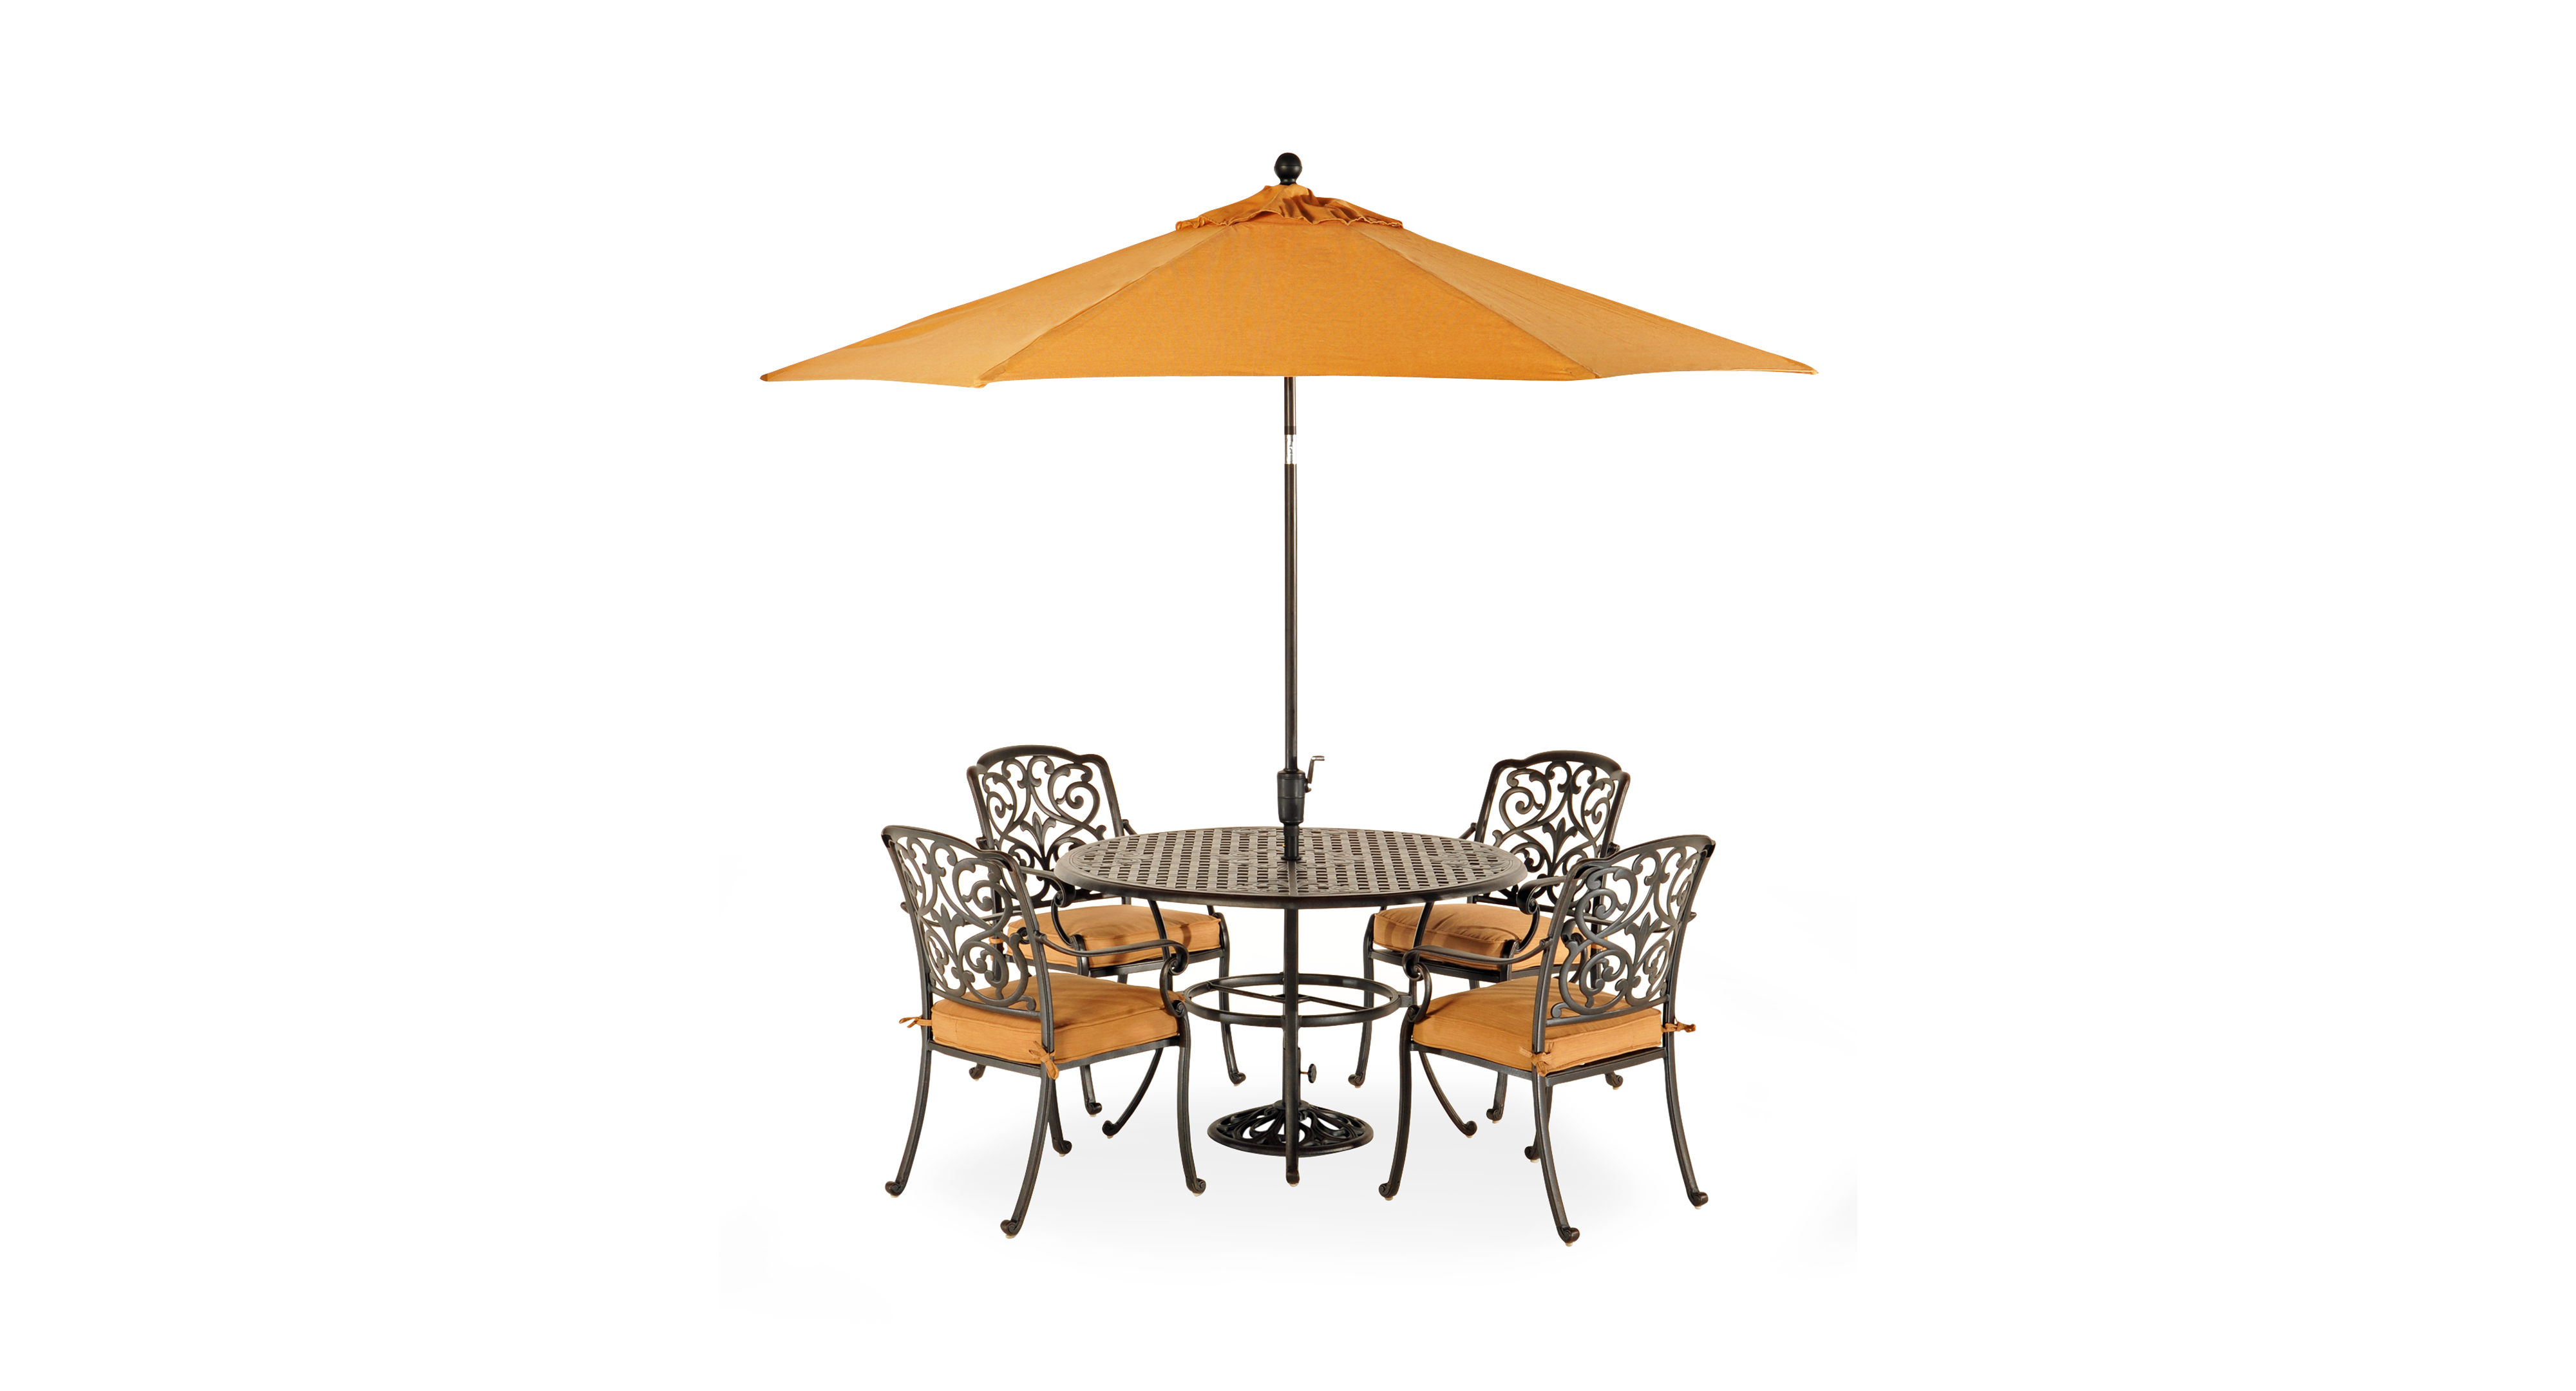 Round dining table and chairs for 4  Montclair Outdoor  Piece Dining Set